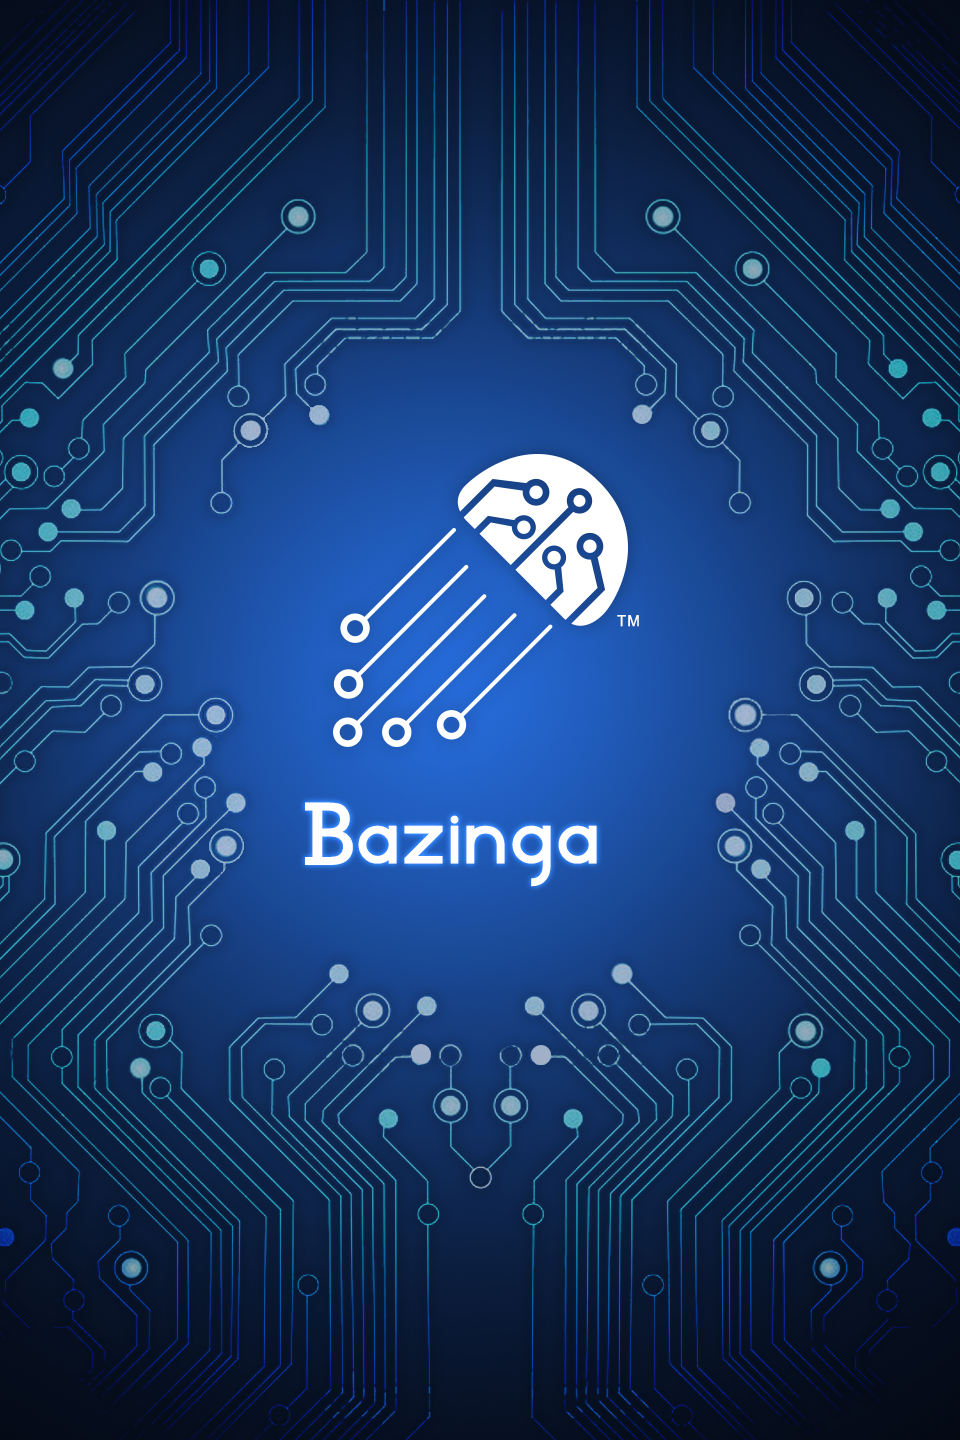 Bazinga is a smartphone app that allows you to post scheduled jobs as well as request for immediate call outs on any Household, Outdoor, Personal or Transportation Services. Bazinga makes your life easier by saving you time and money, we get you multiple quotations straight to your smart phone and you choose your Service Provider based on the best quotations and ratings.